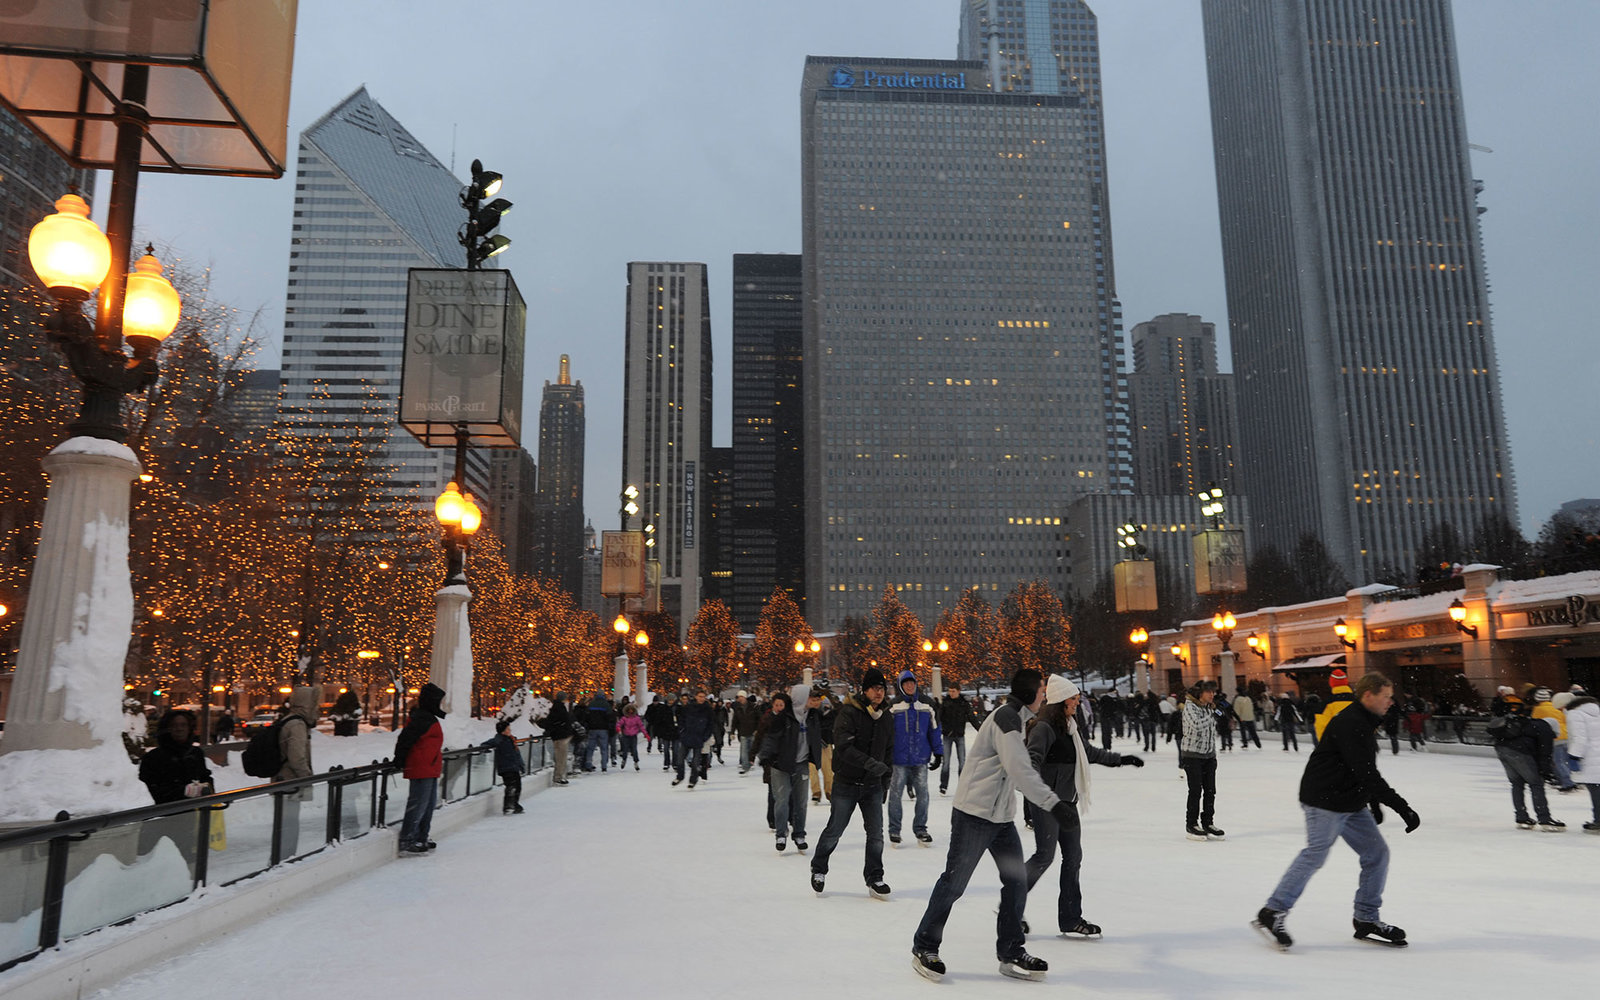 Christmas in Chicago - What to do | Travel + Leisure